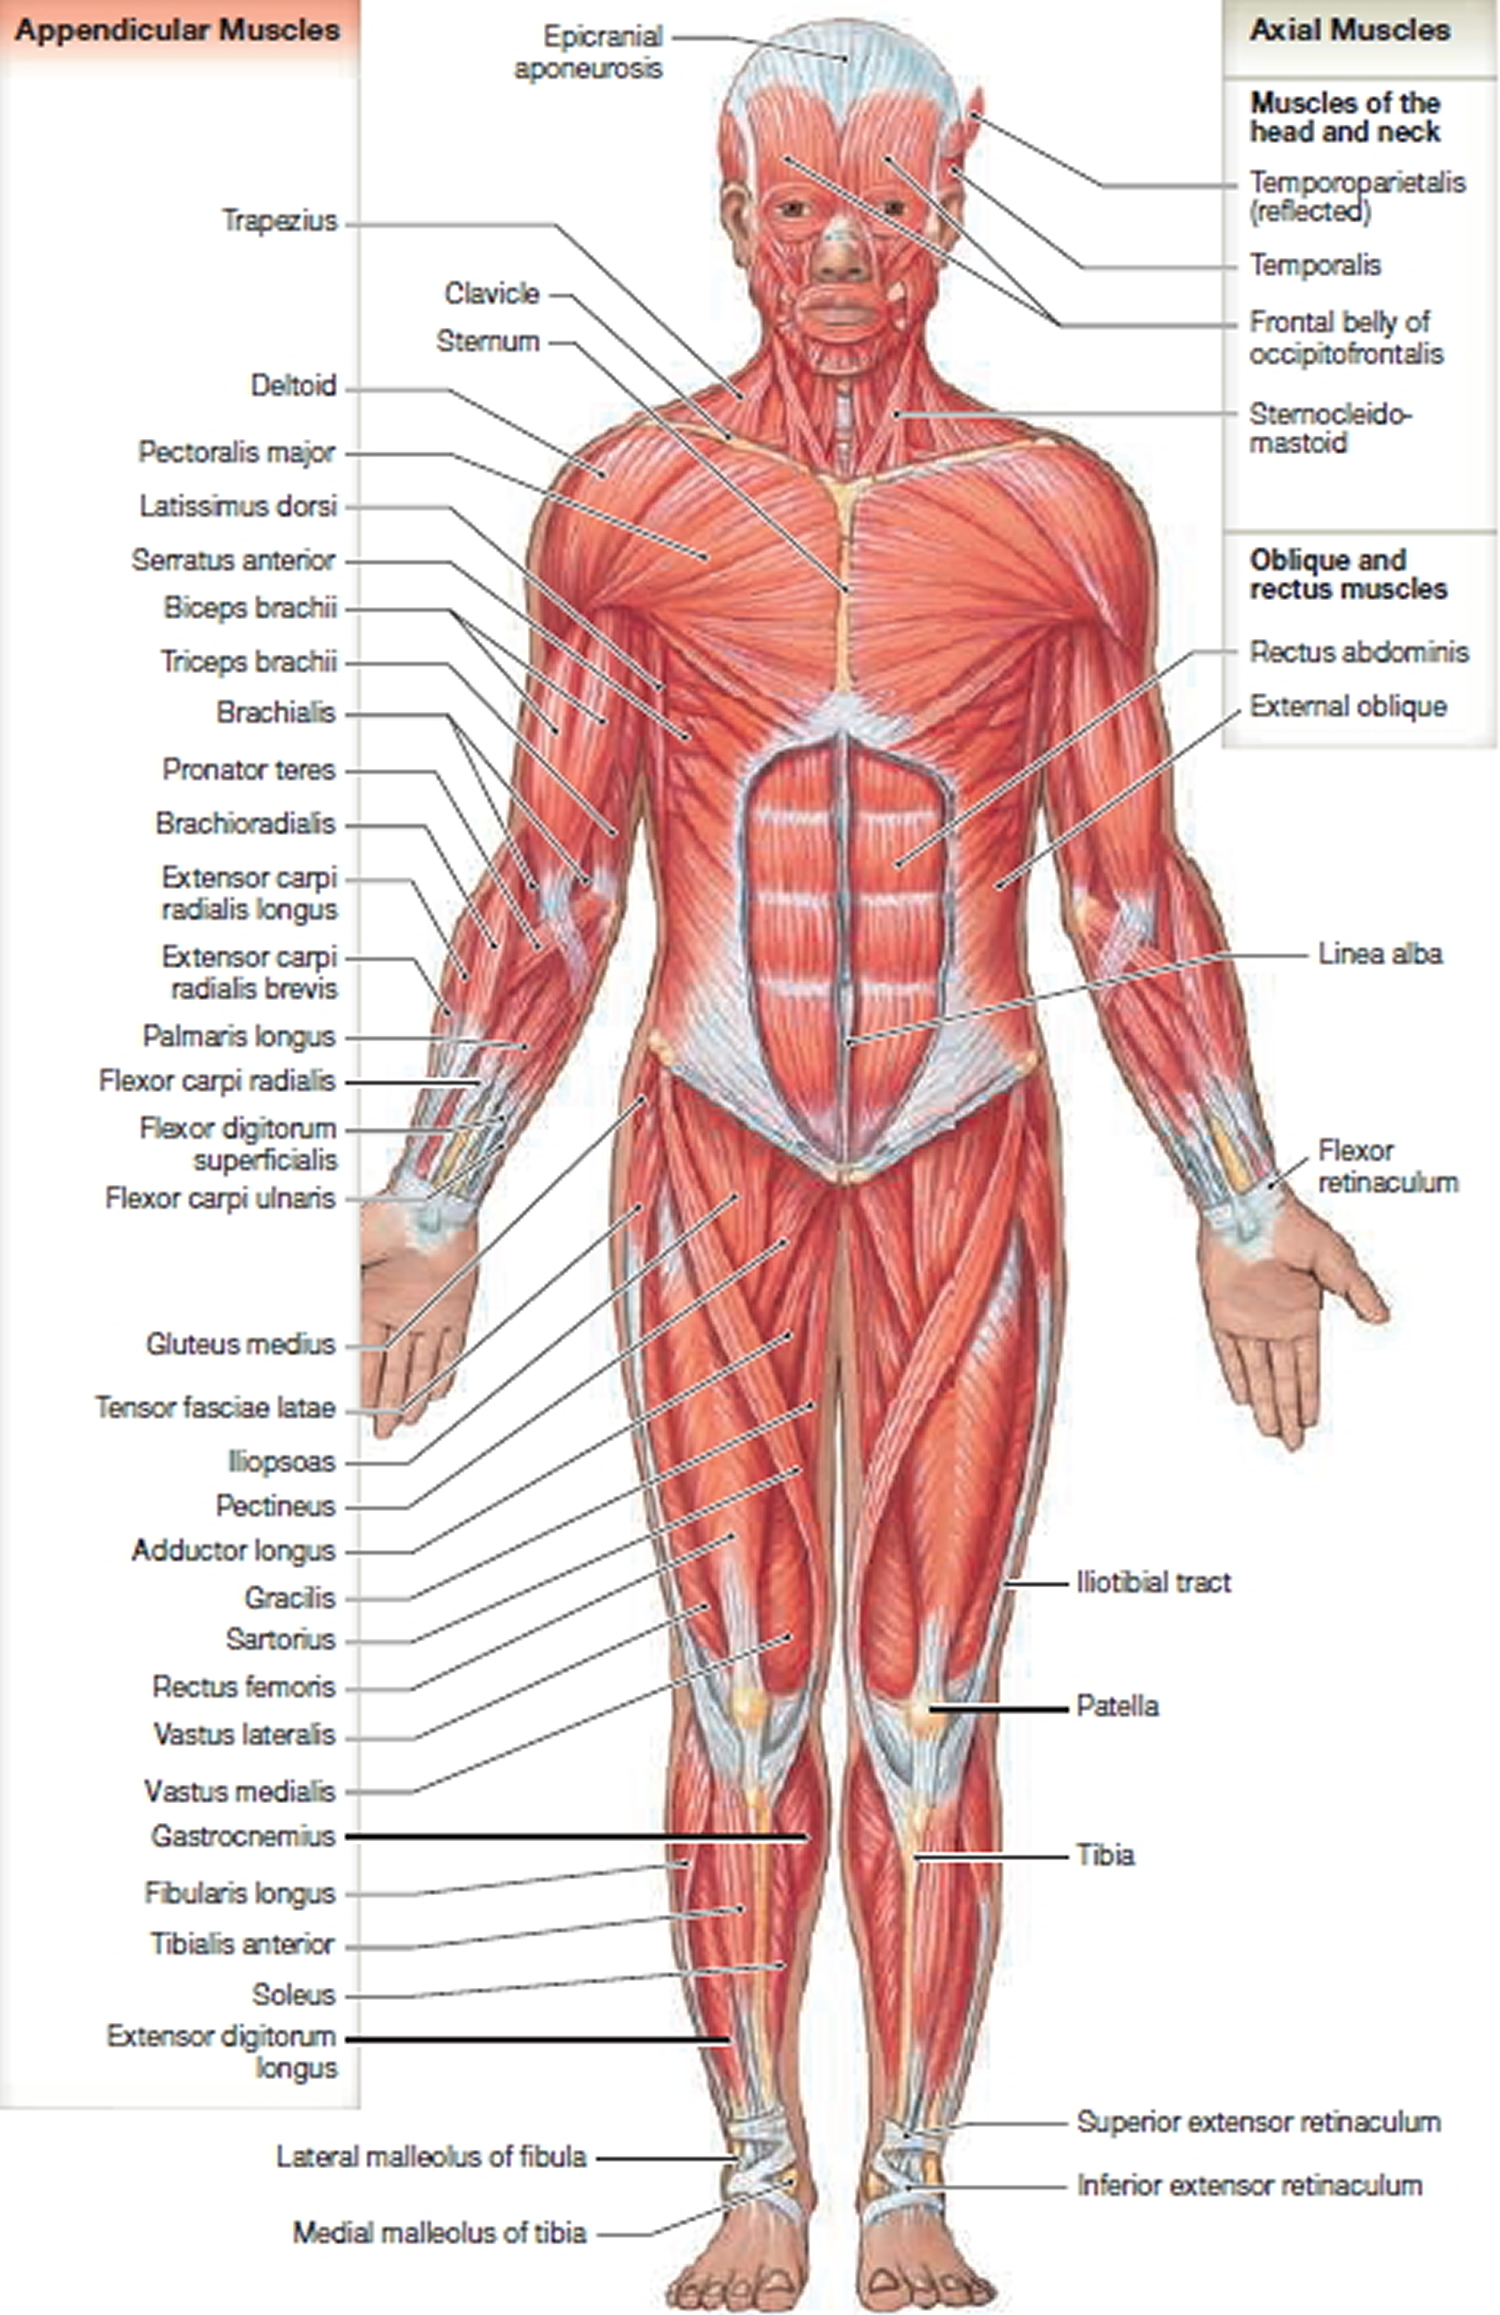 Muscle Anatomy Skeletal Muscles Groin Muscles Calf Muscles